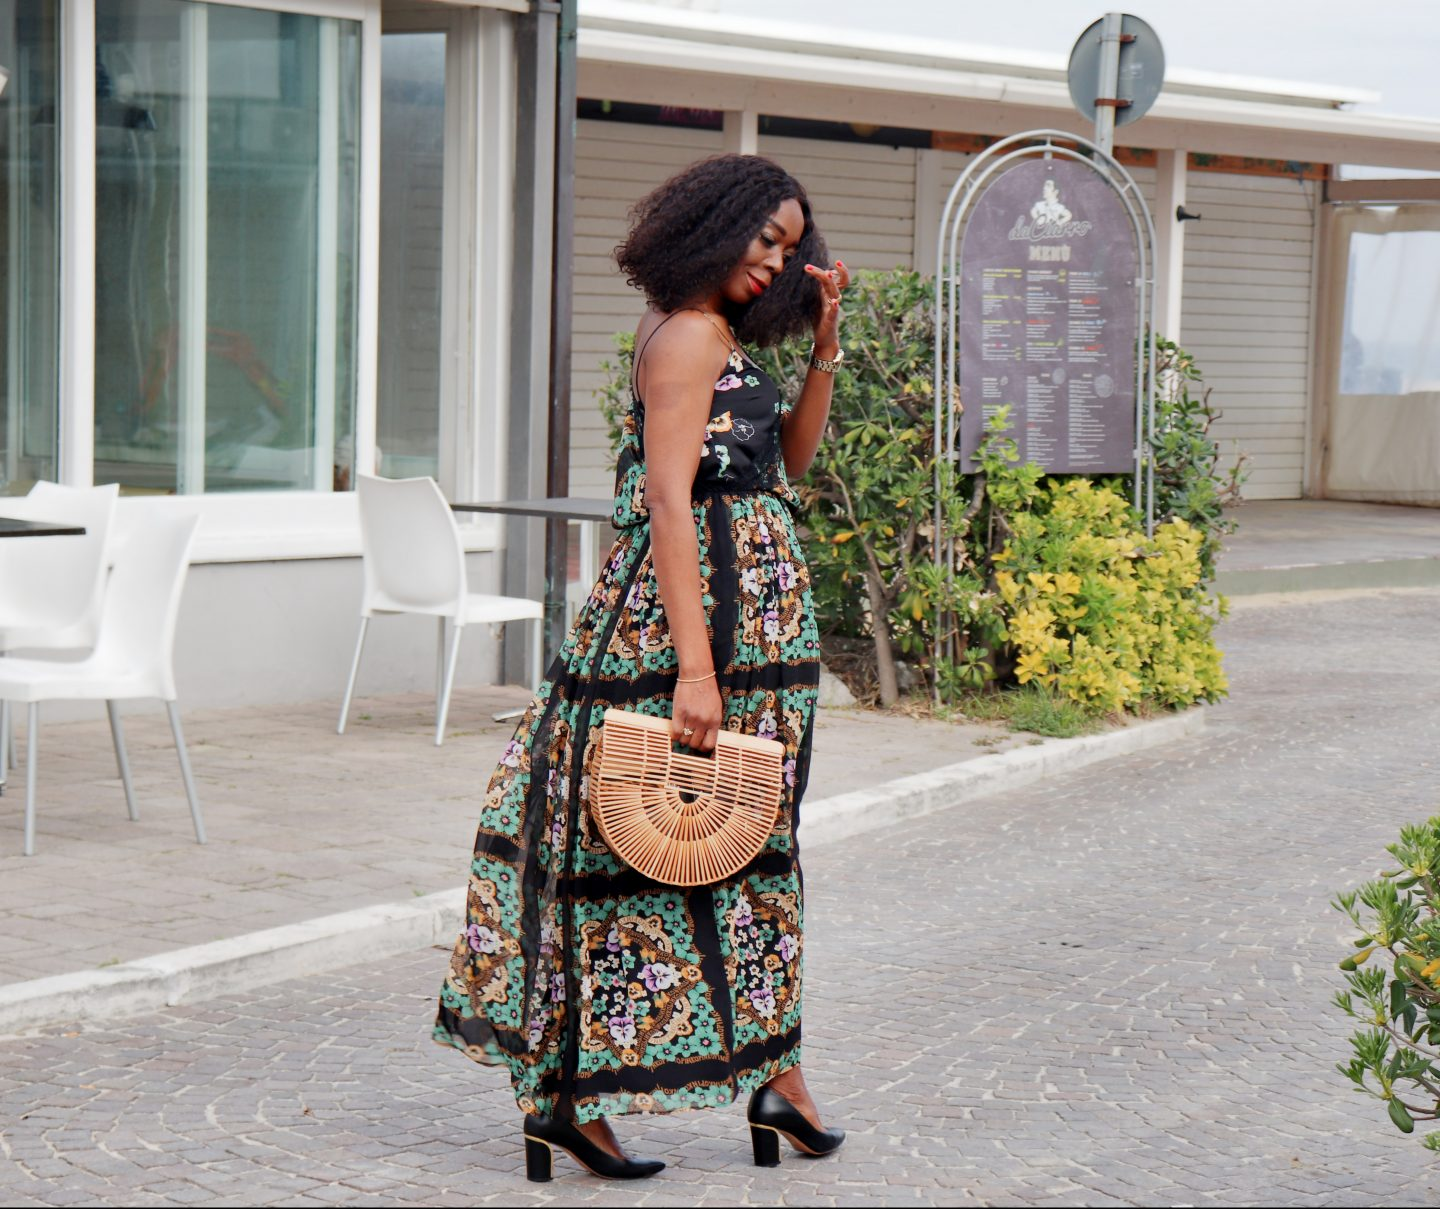 Summer Dress In Style // Summer style